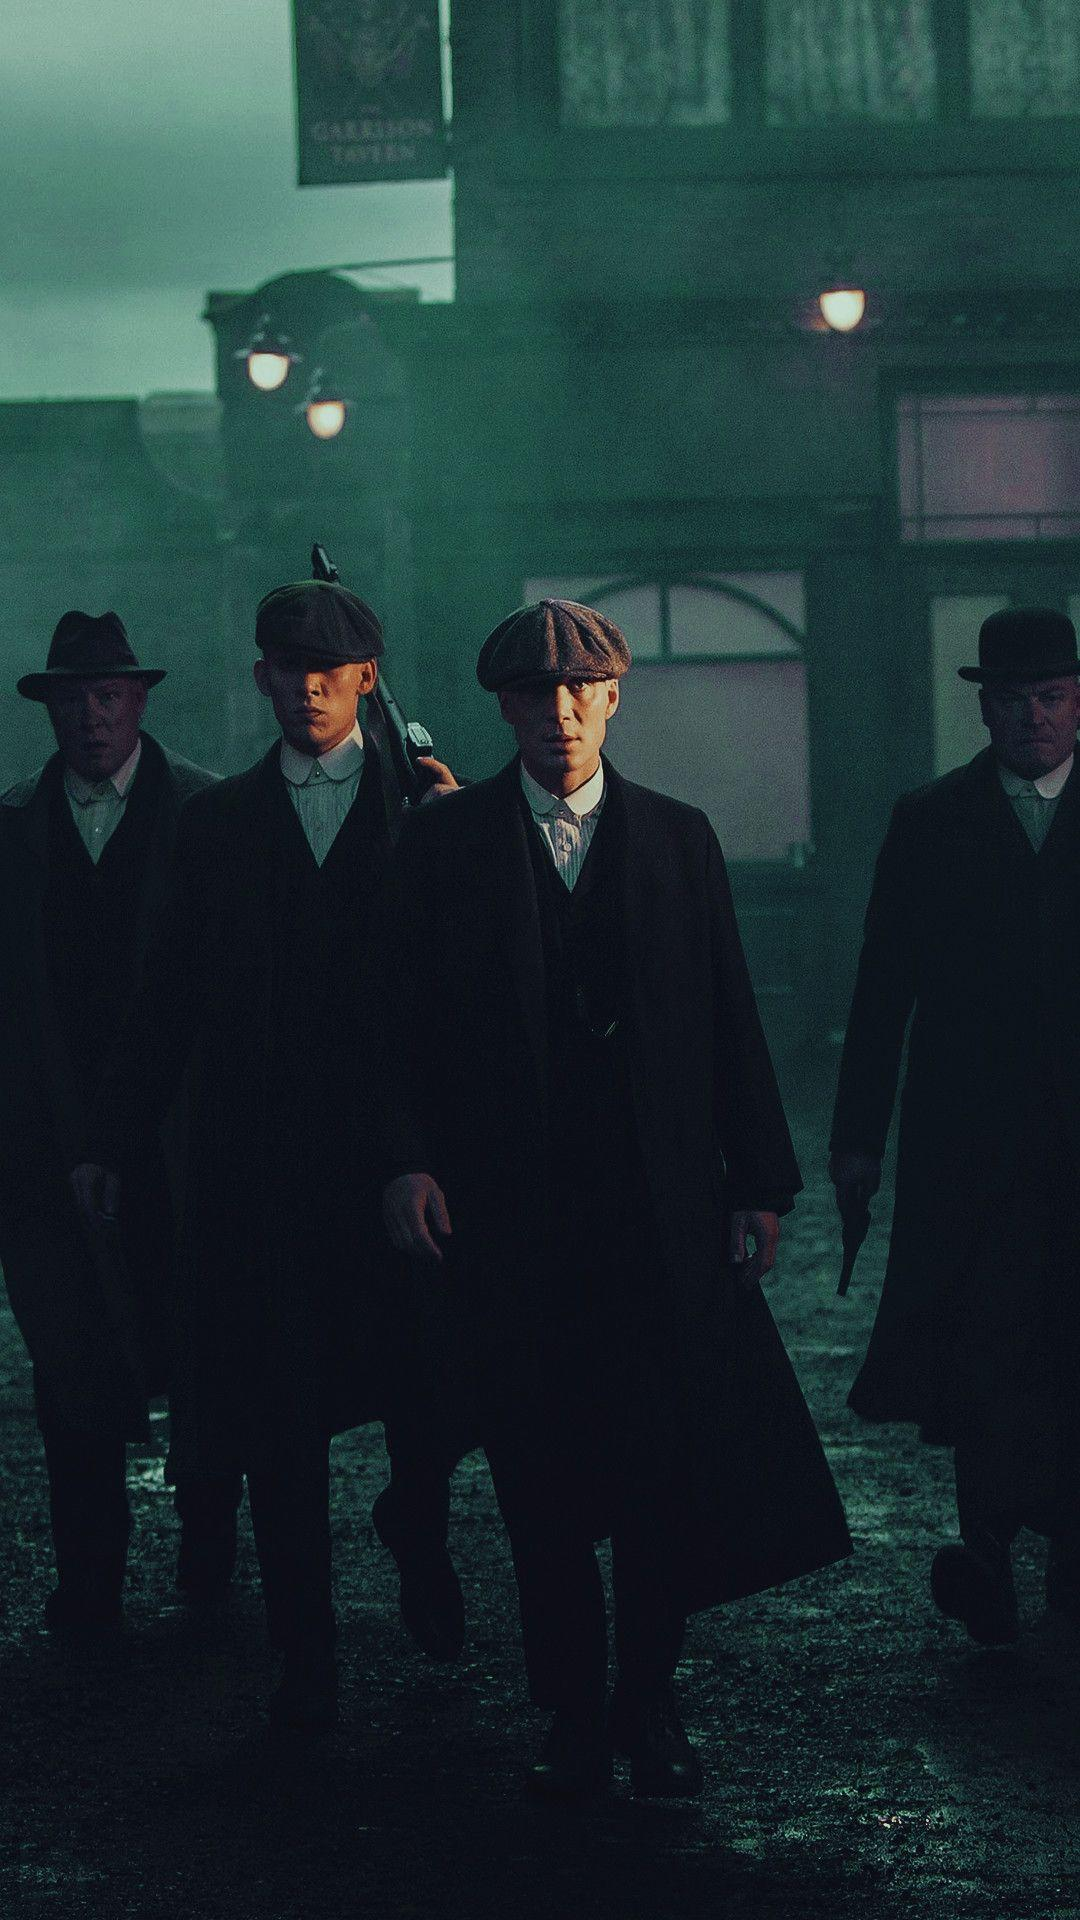 Peaky Blinders Quotes Wallpapers - Wallpaper Cave